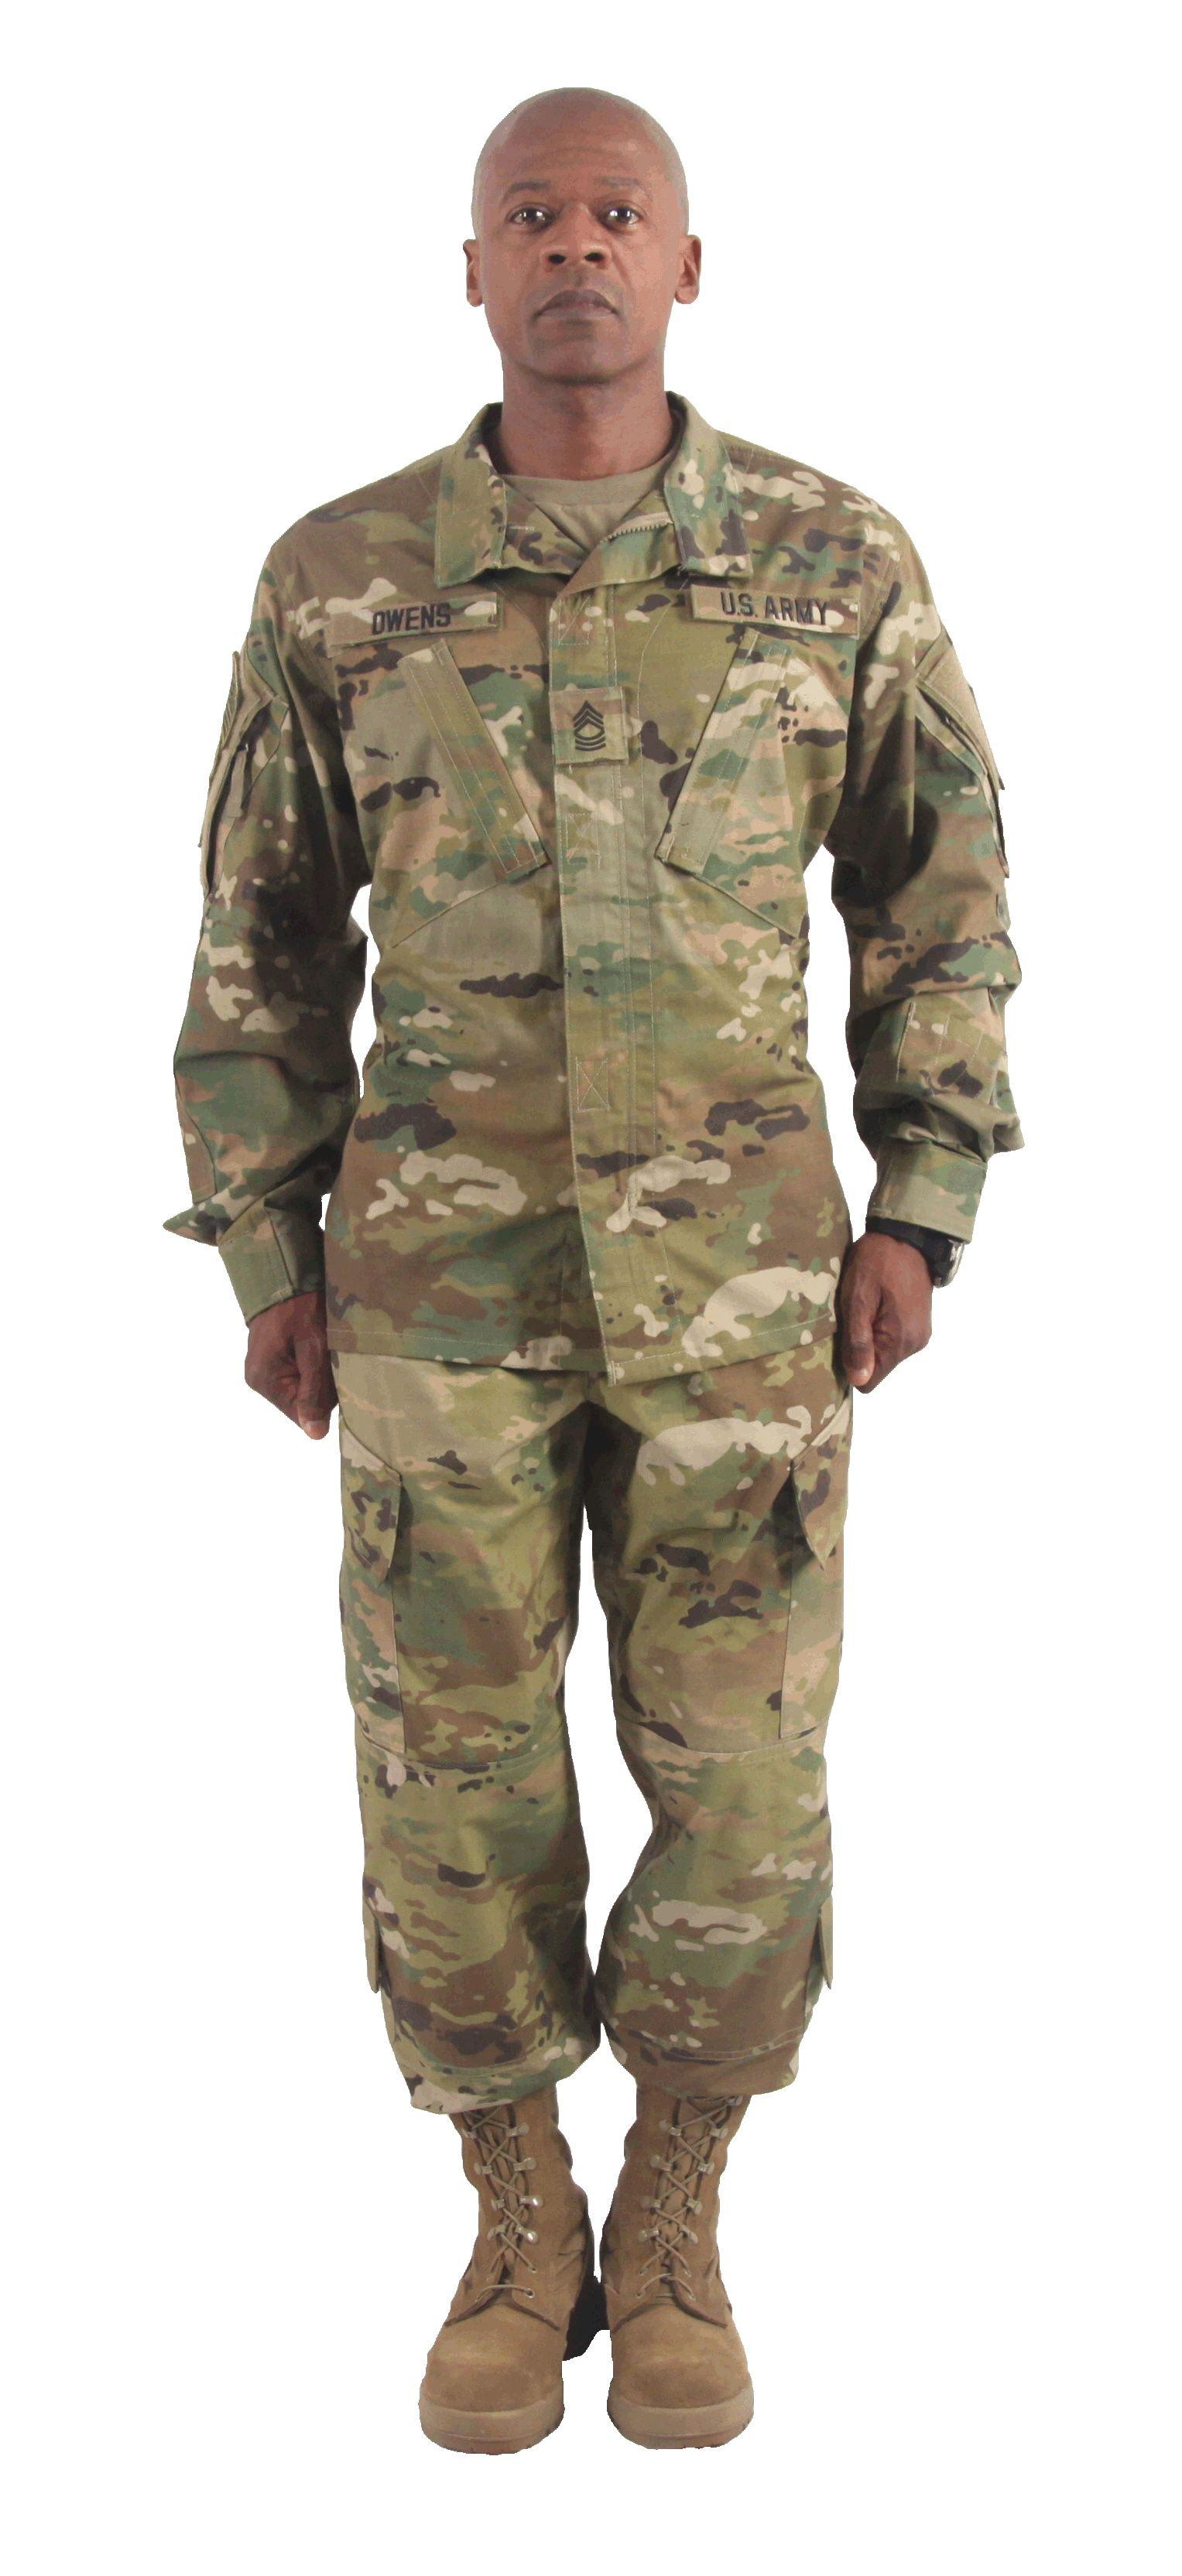 Updated Us Army Photos Of Scorpion W2 Operational Camouflage Pattern Variant Of Army Combat Uniform Army Combat Uniform Combat Uniforms Us Army Uniforms